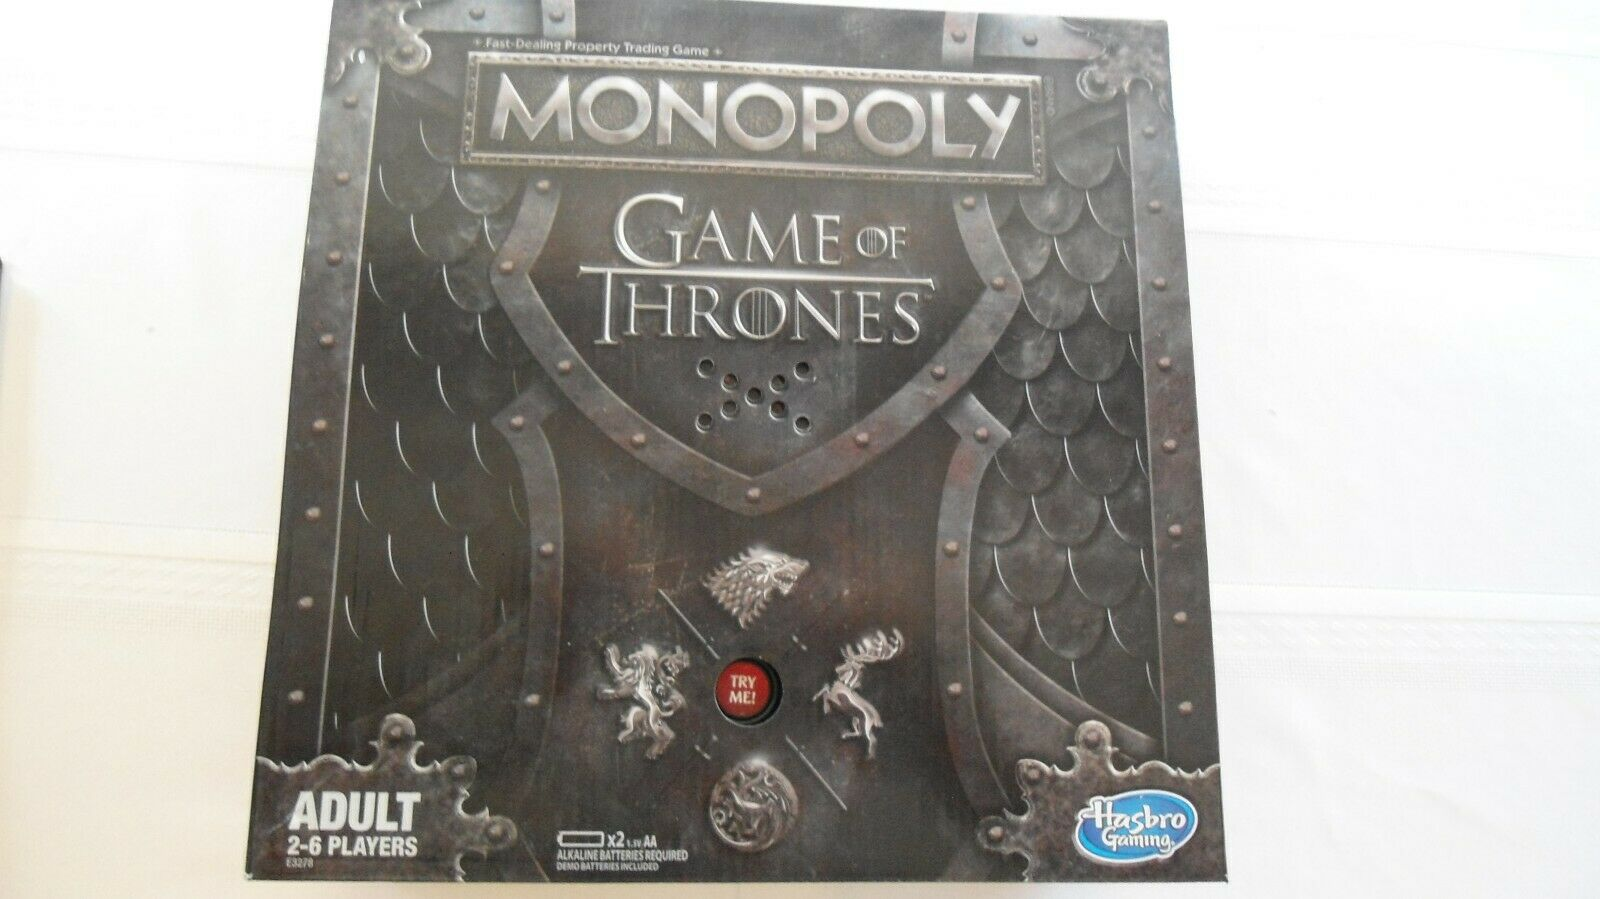 Monopoly Game of Thrones Board Game for Adults Hasbro Board